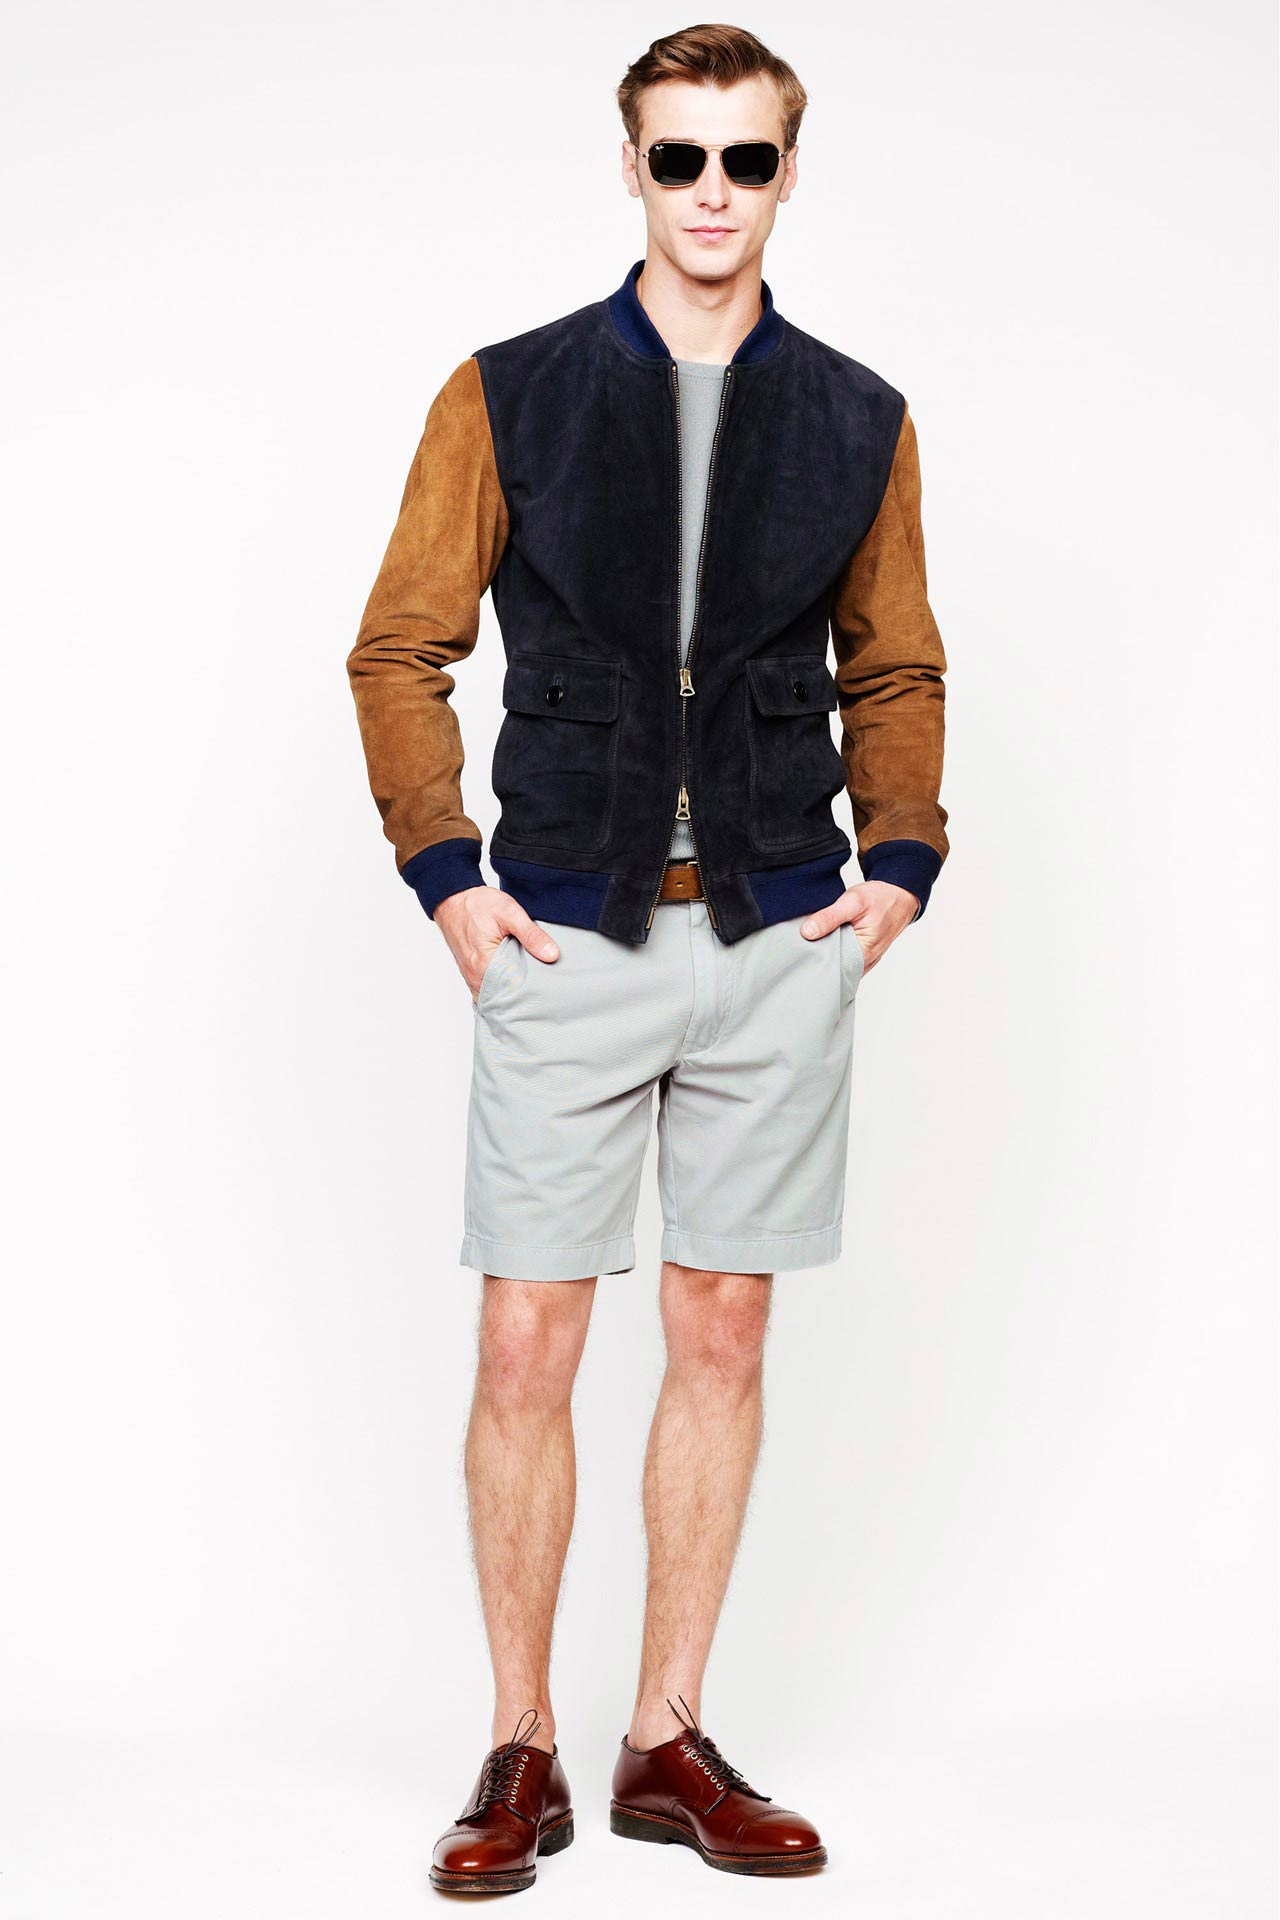 The 2014 J.Crew Sample Sale